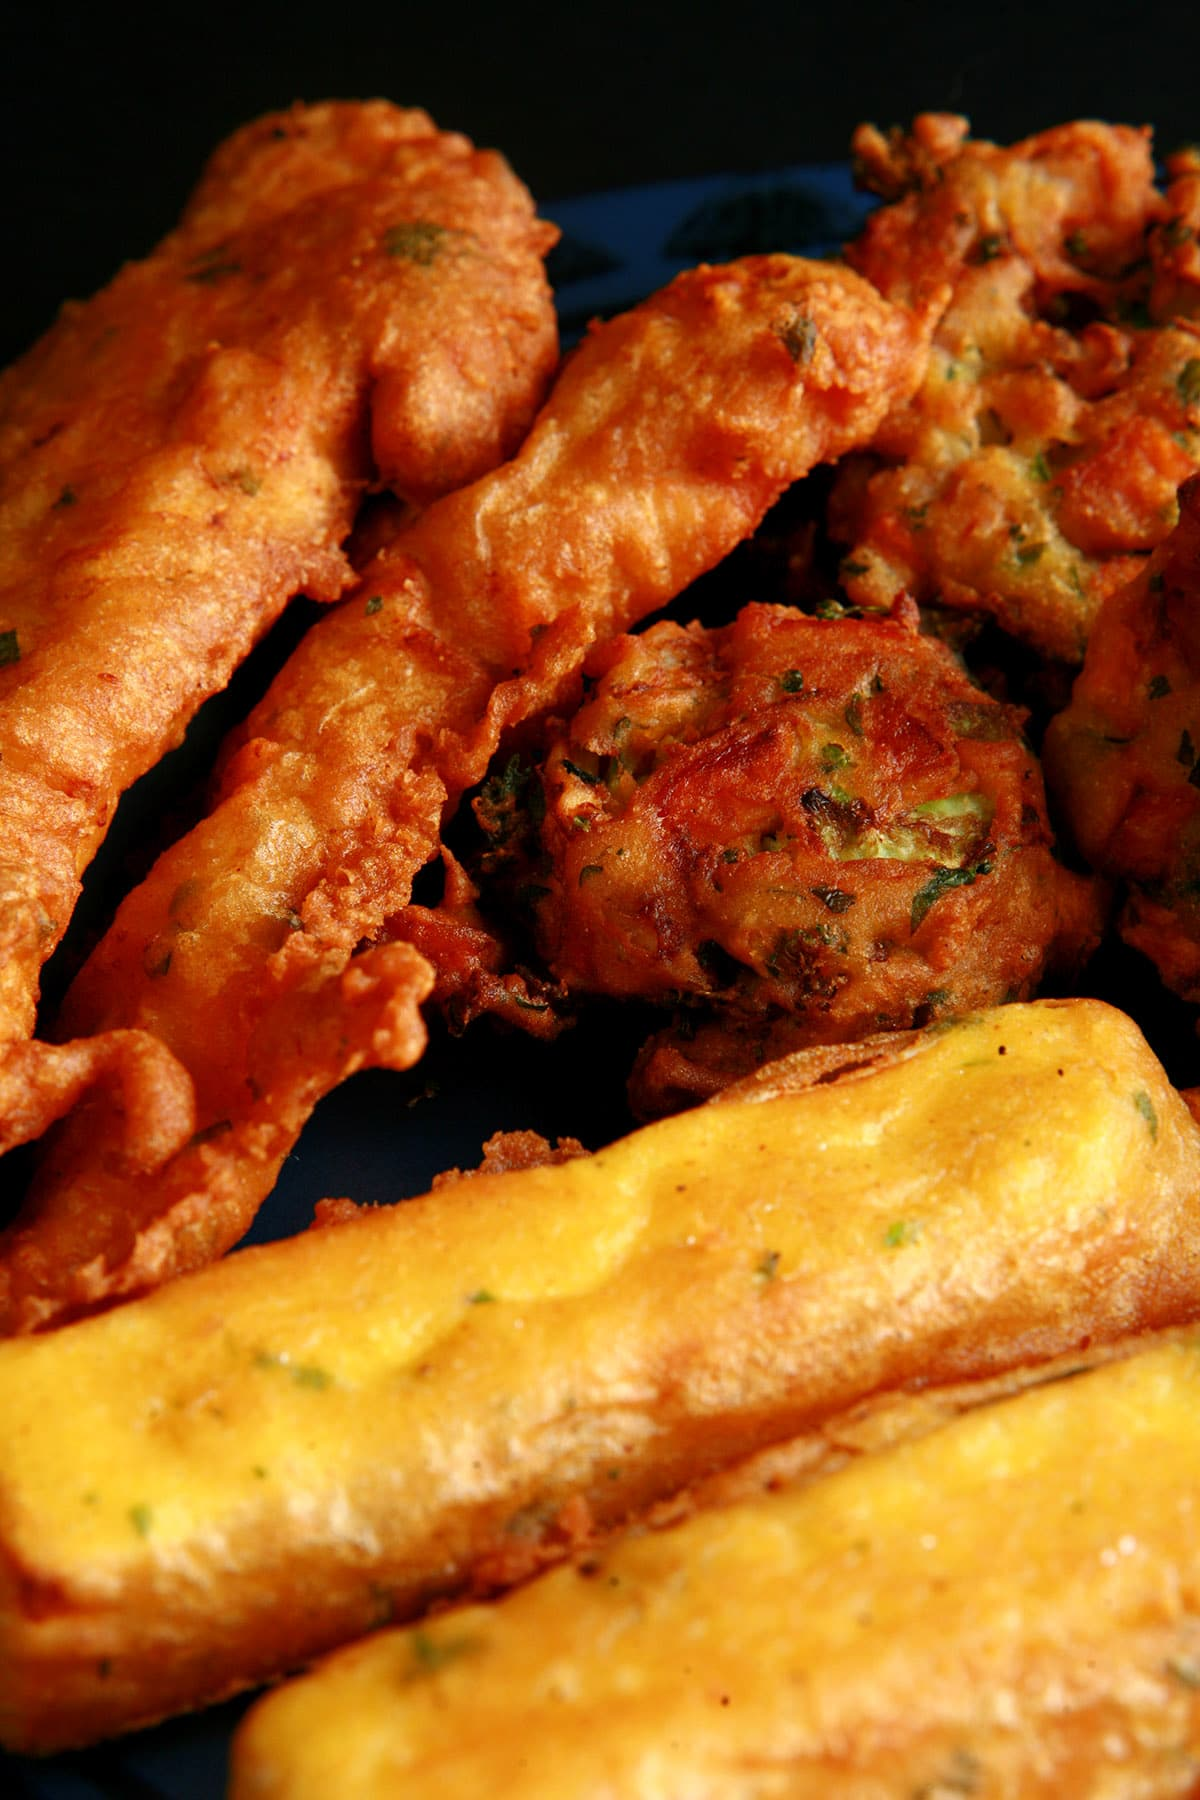 A close up view of a plate of several types of pakora - chicken, paneer and mixed vegetable pakoras.